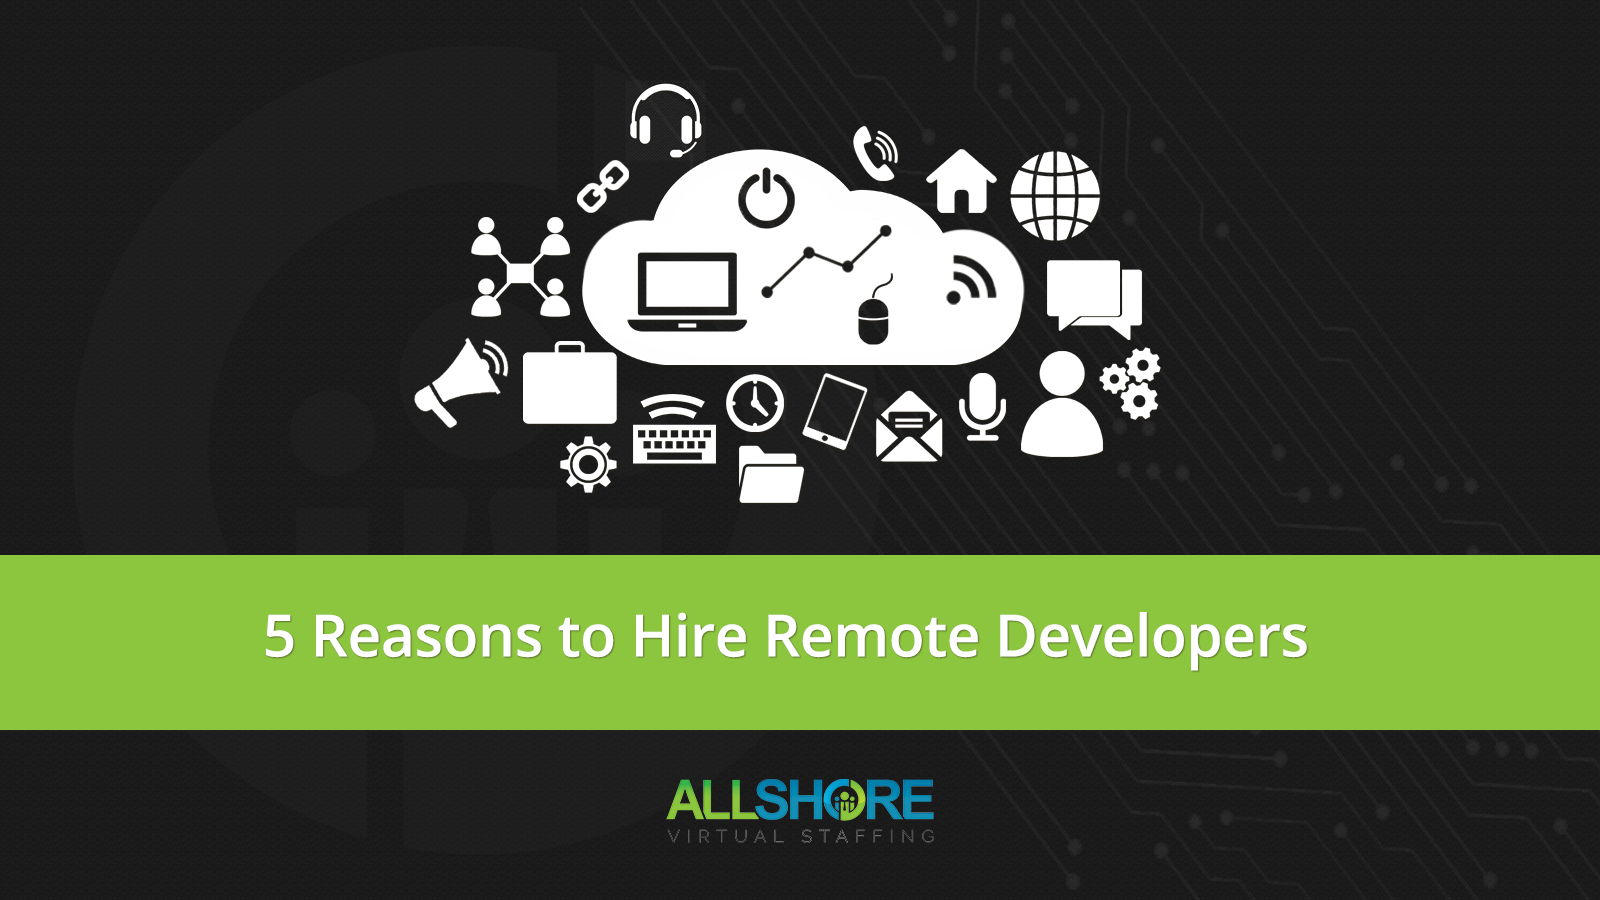 5 Reasons to Hire Remote Developers